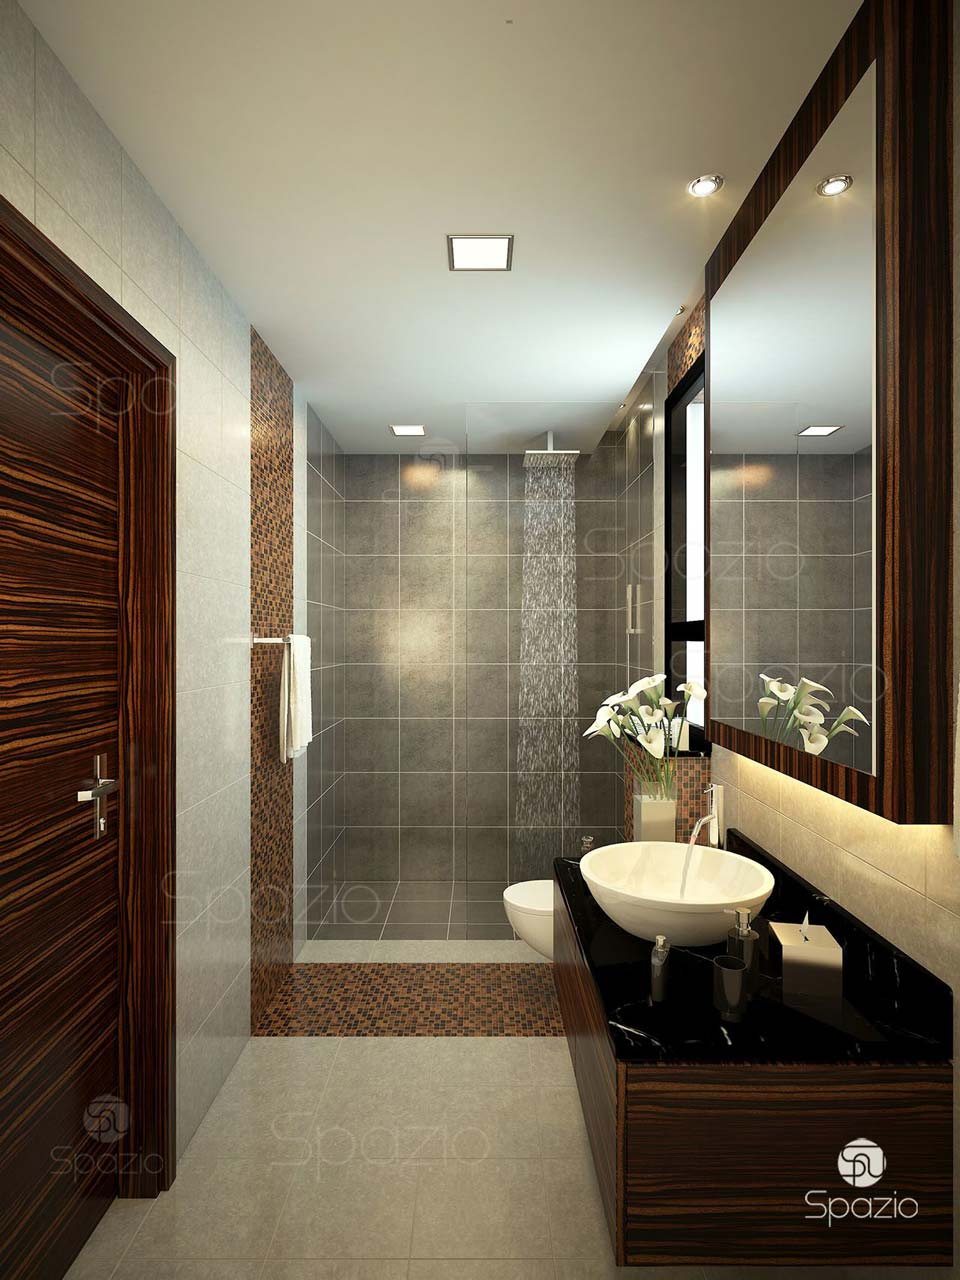 Spa Like Bathroom Ideas Design